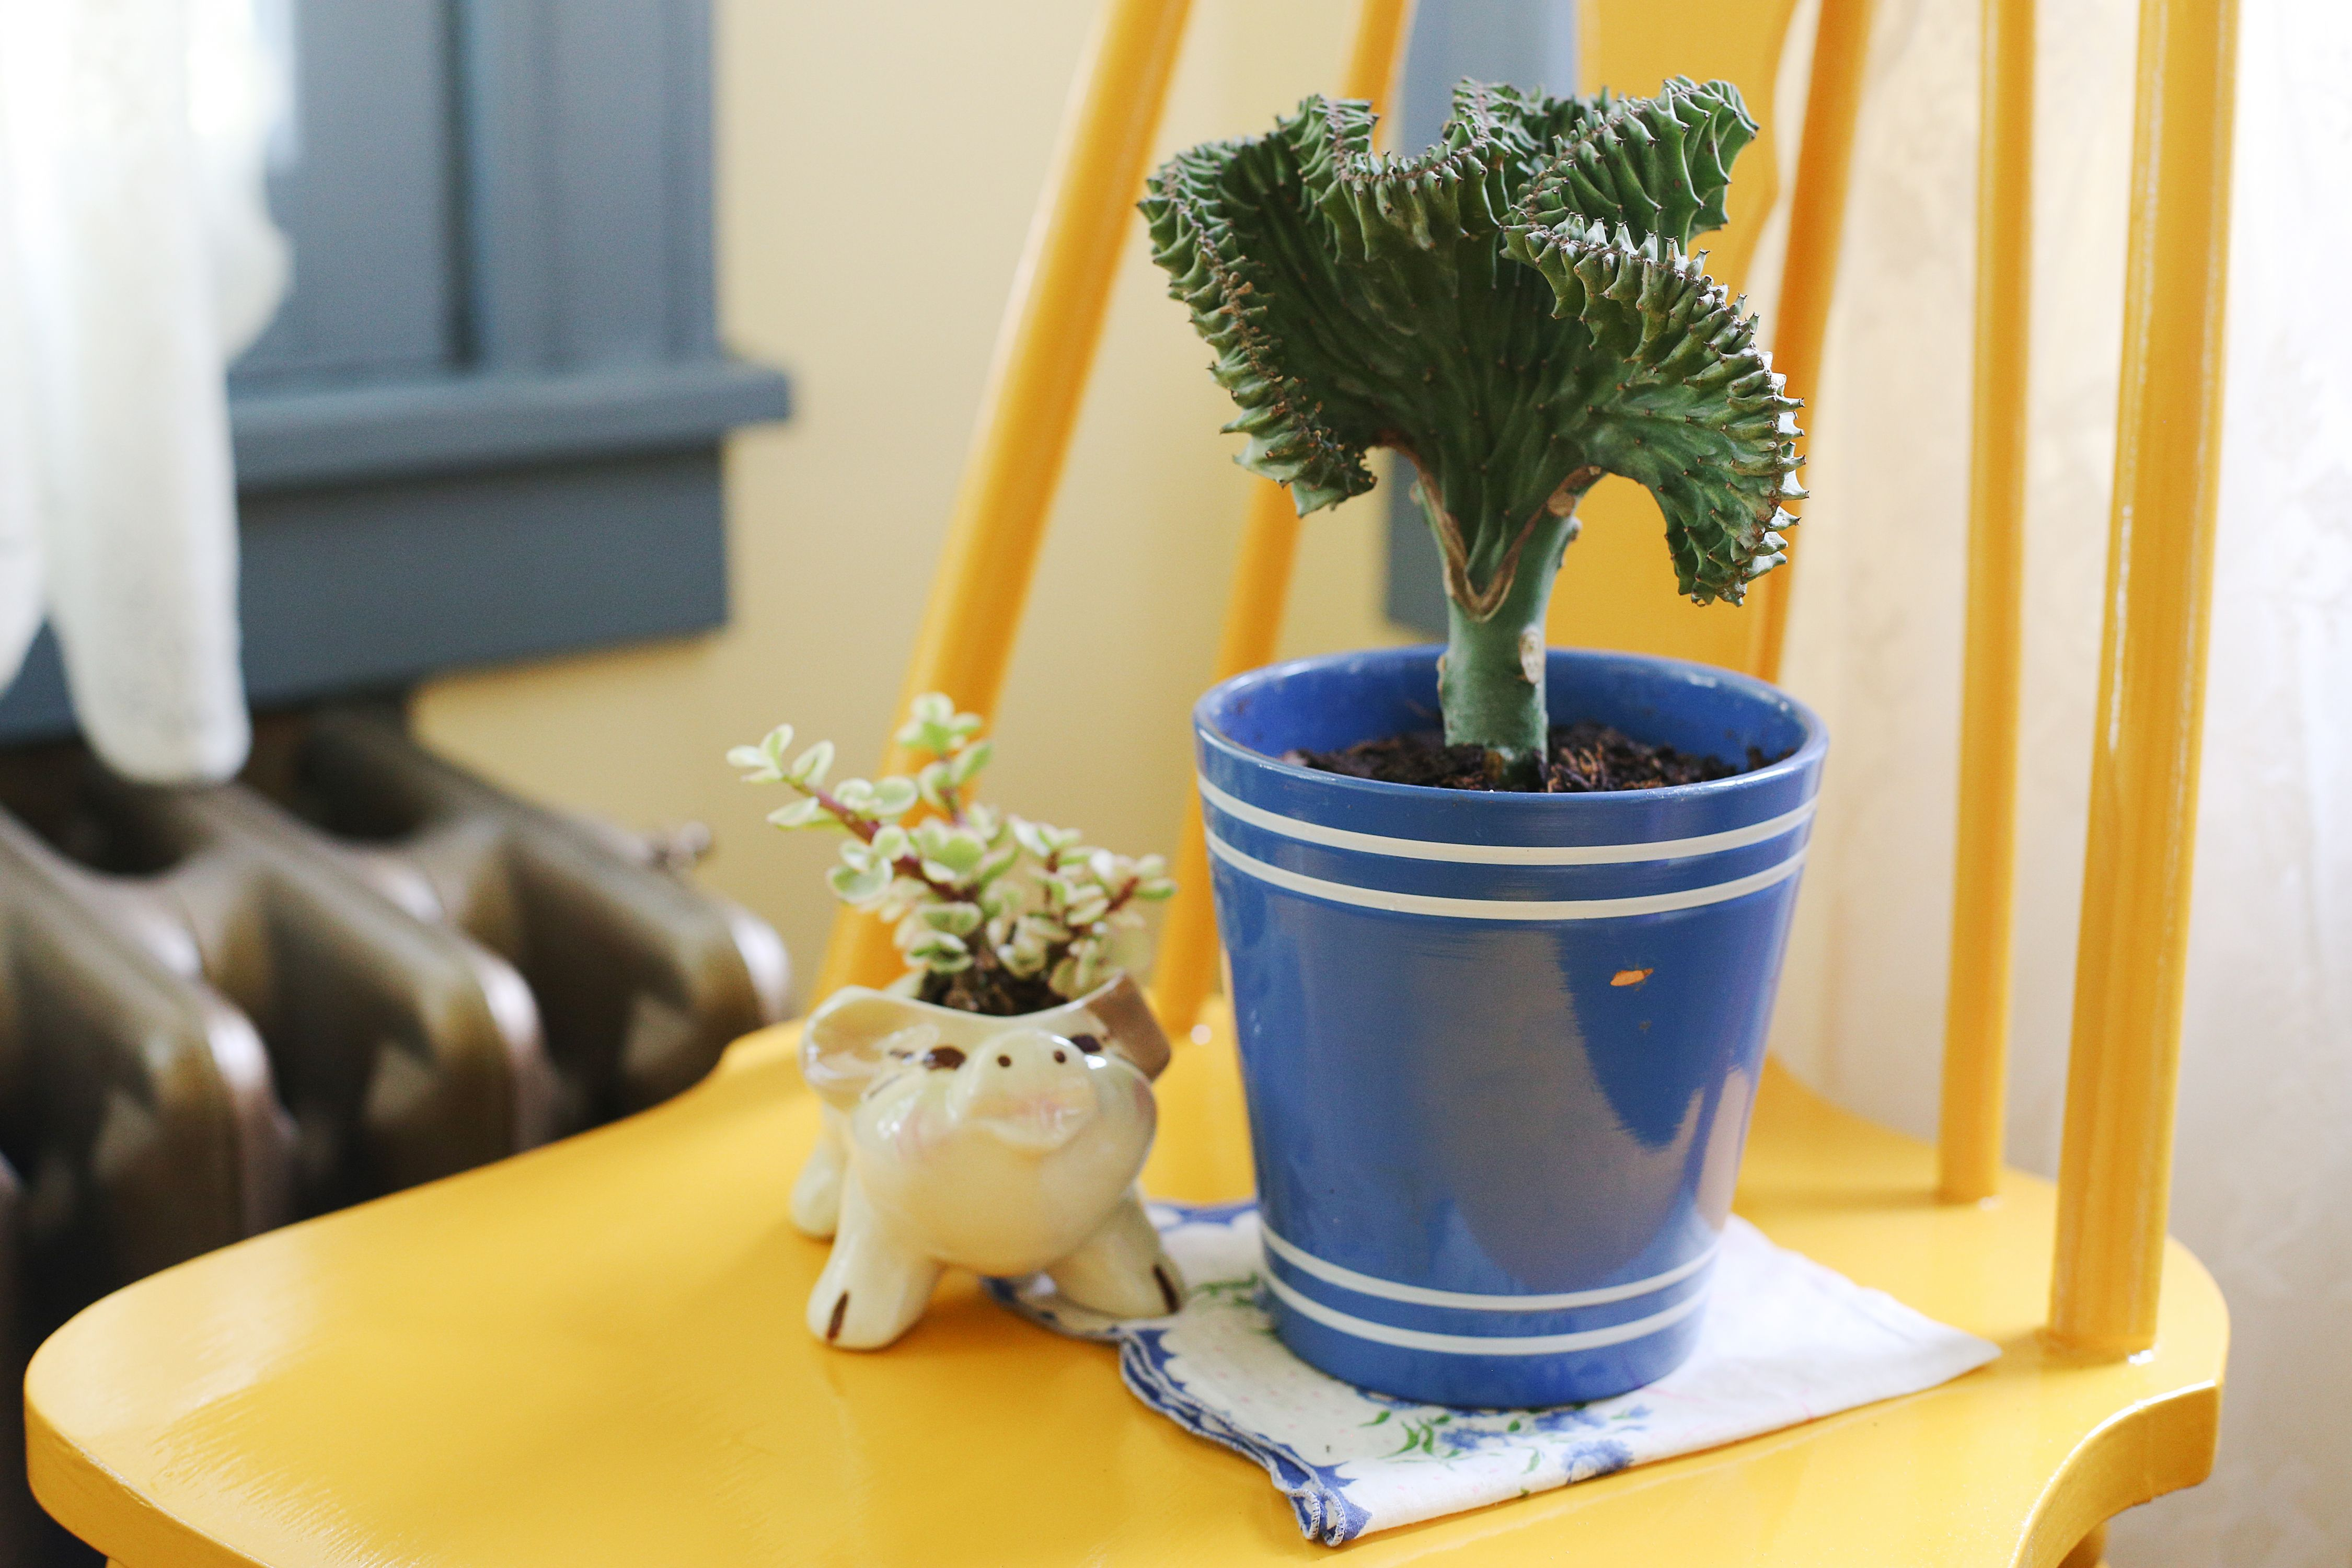 How to Care for a Coral Cactus | Hunker